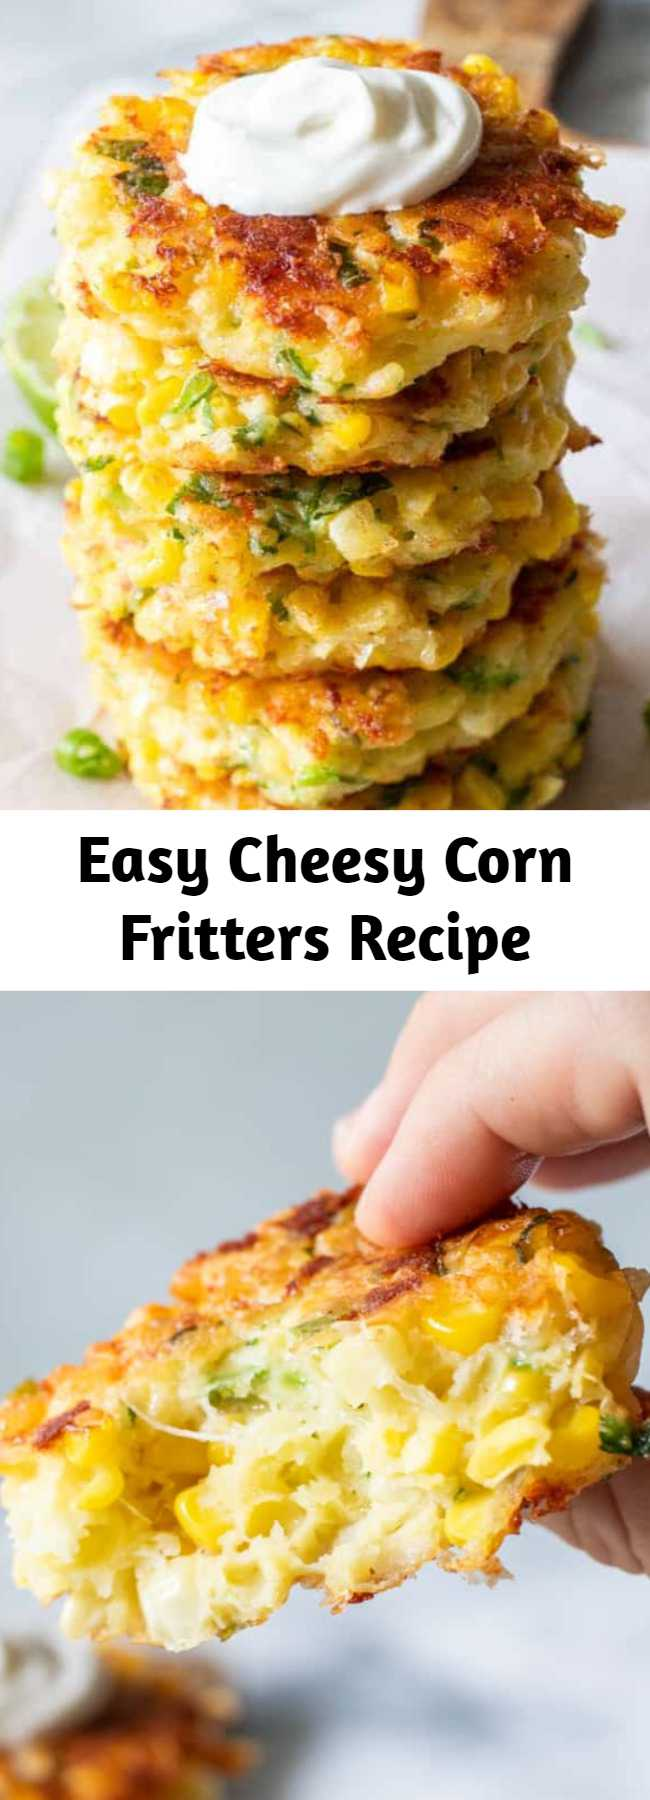 Easy Cheesy Corn Fritters Recipe - These easy to make fritters are loaded up with fresh corn, flavor, and most importantly cheese! Fried in a small amount of olive oil, these fritters are the perfect way to enjoy the flavors of summer! #cornfritters #appetizer #fritters